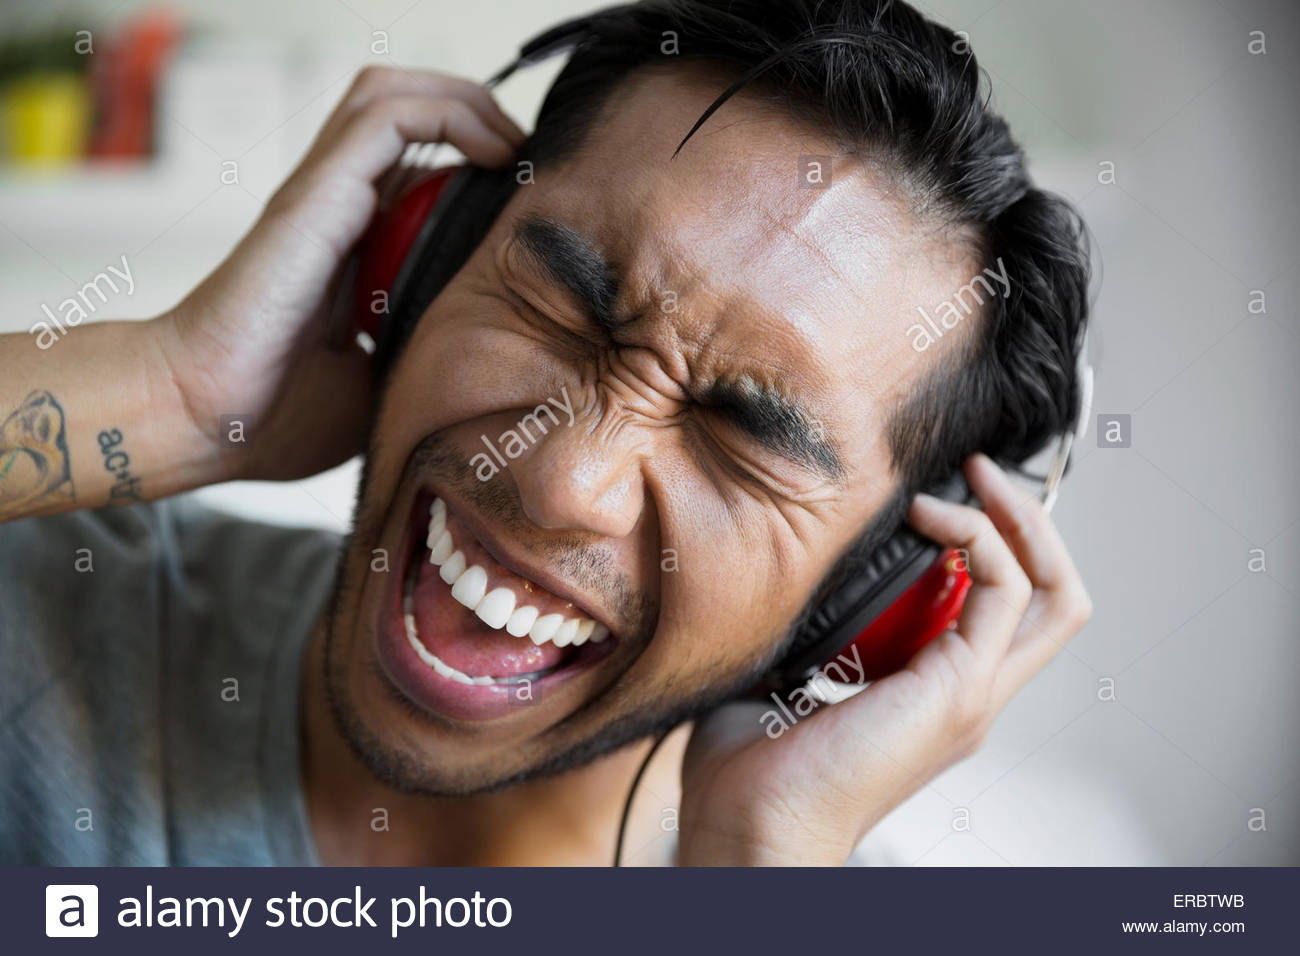 Enthusiastic man listening singing to music on headphones - Stock Image